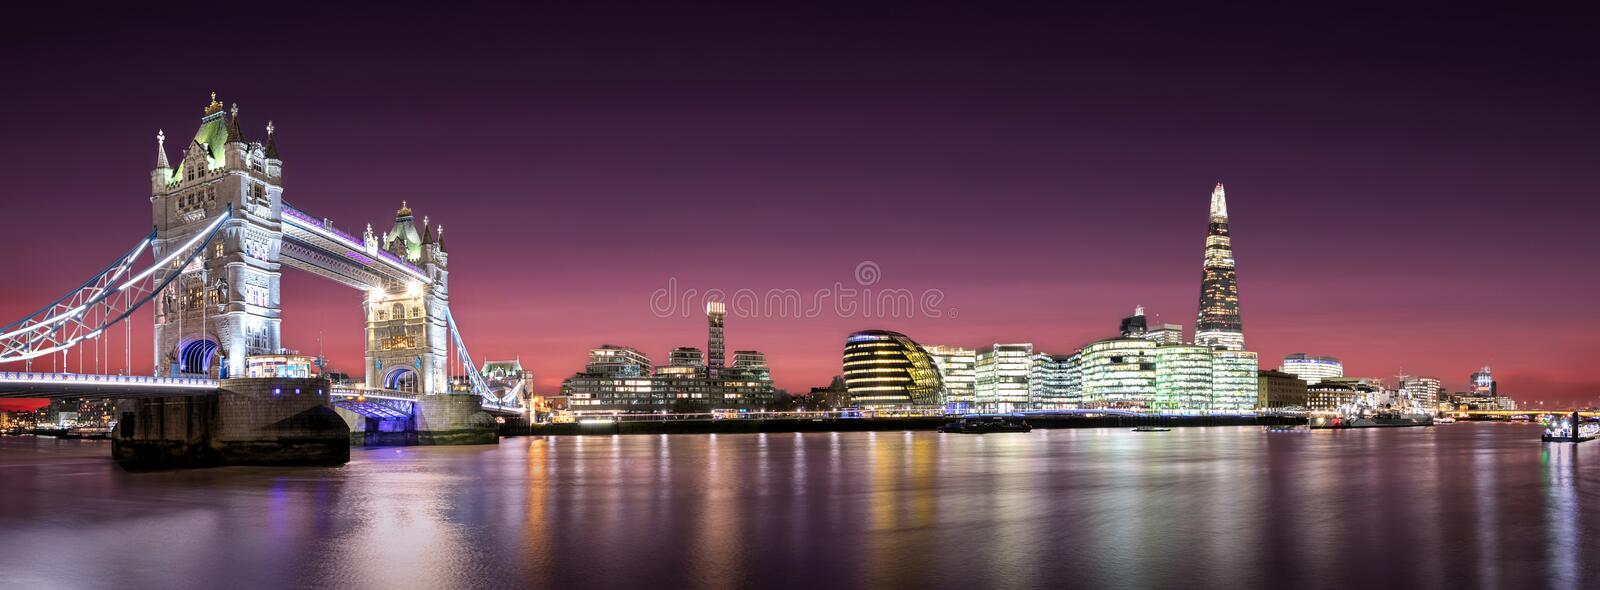 Download Panorama Of The Tower Bridge Until London Bridge With London Skyline After Sunset Stock Photo - Image of skyline, famous: 88057906